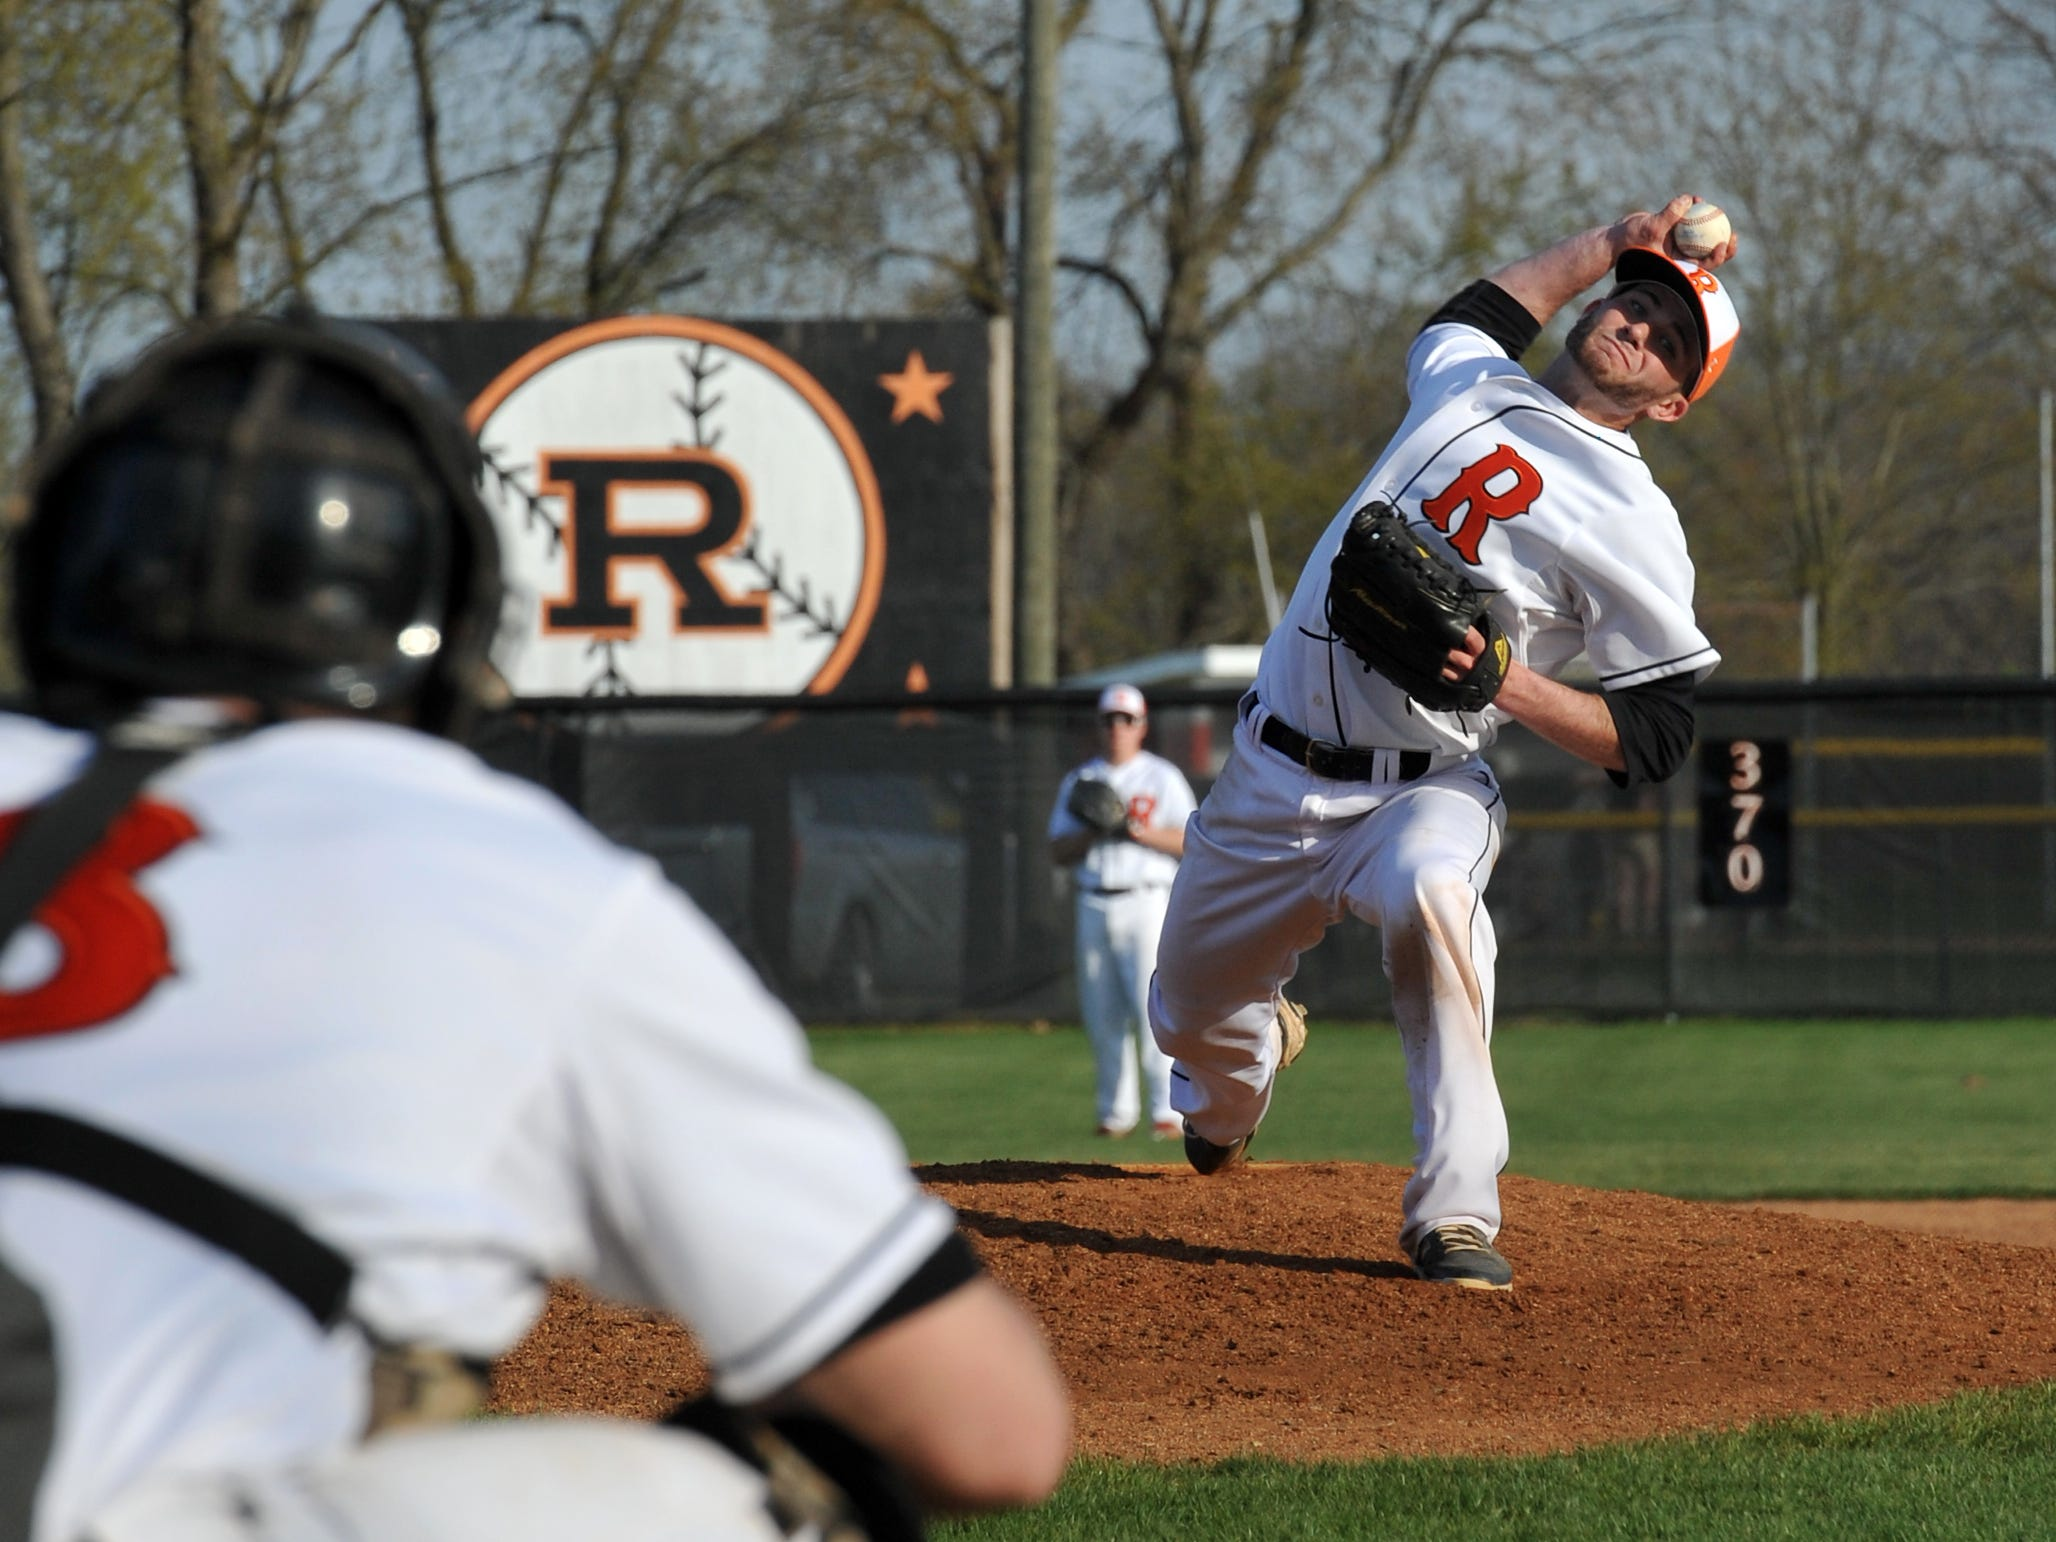 Ridgewood senior pitcher Caleb Tingle throws in one of the final pitches of the top of the seventh inning against TCC Tuesday evening.